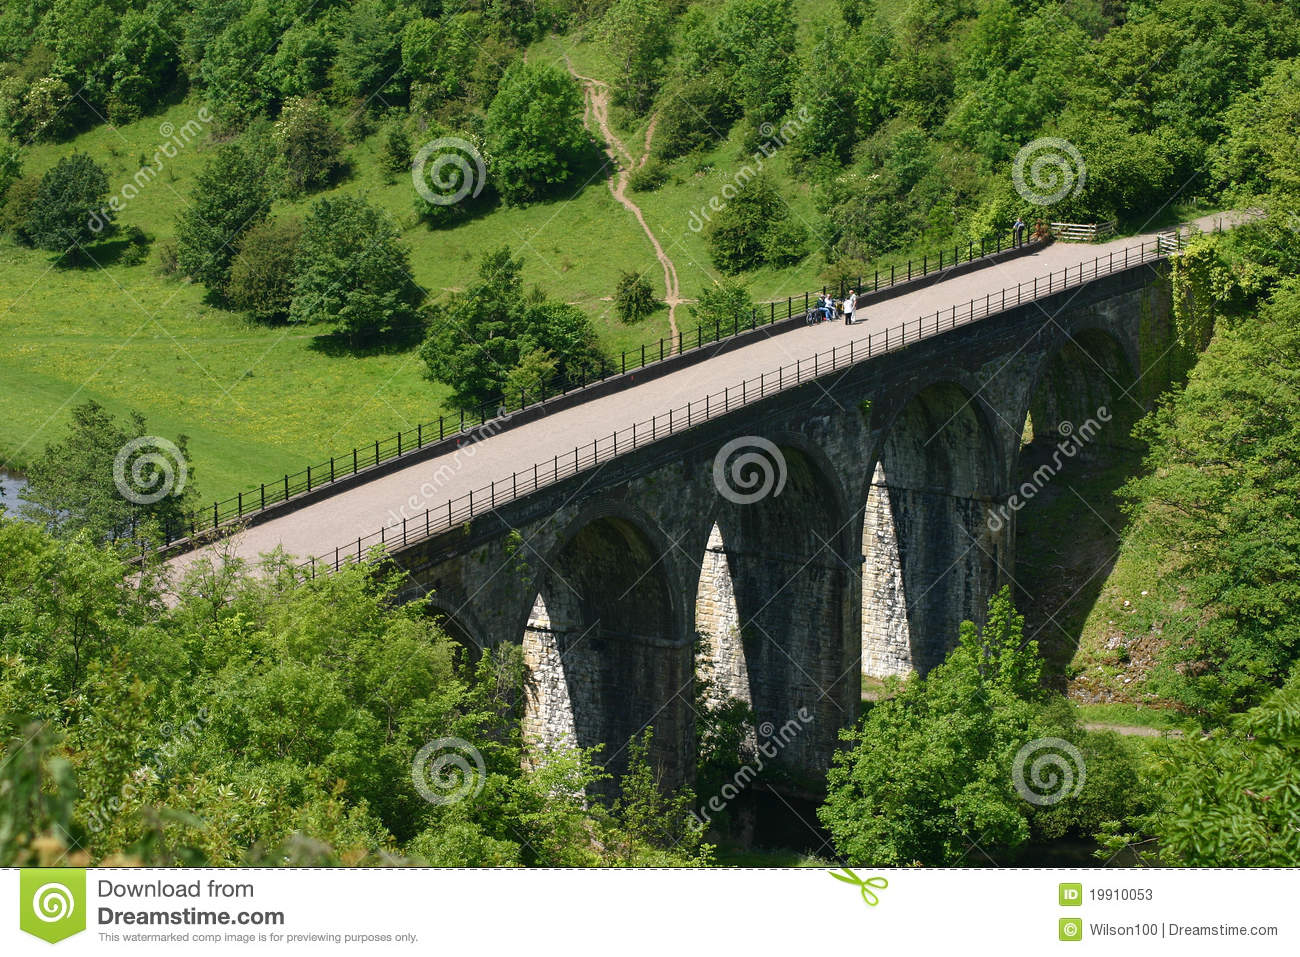 Monsal HauptViaduct, Derbyshire